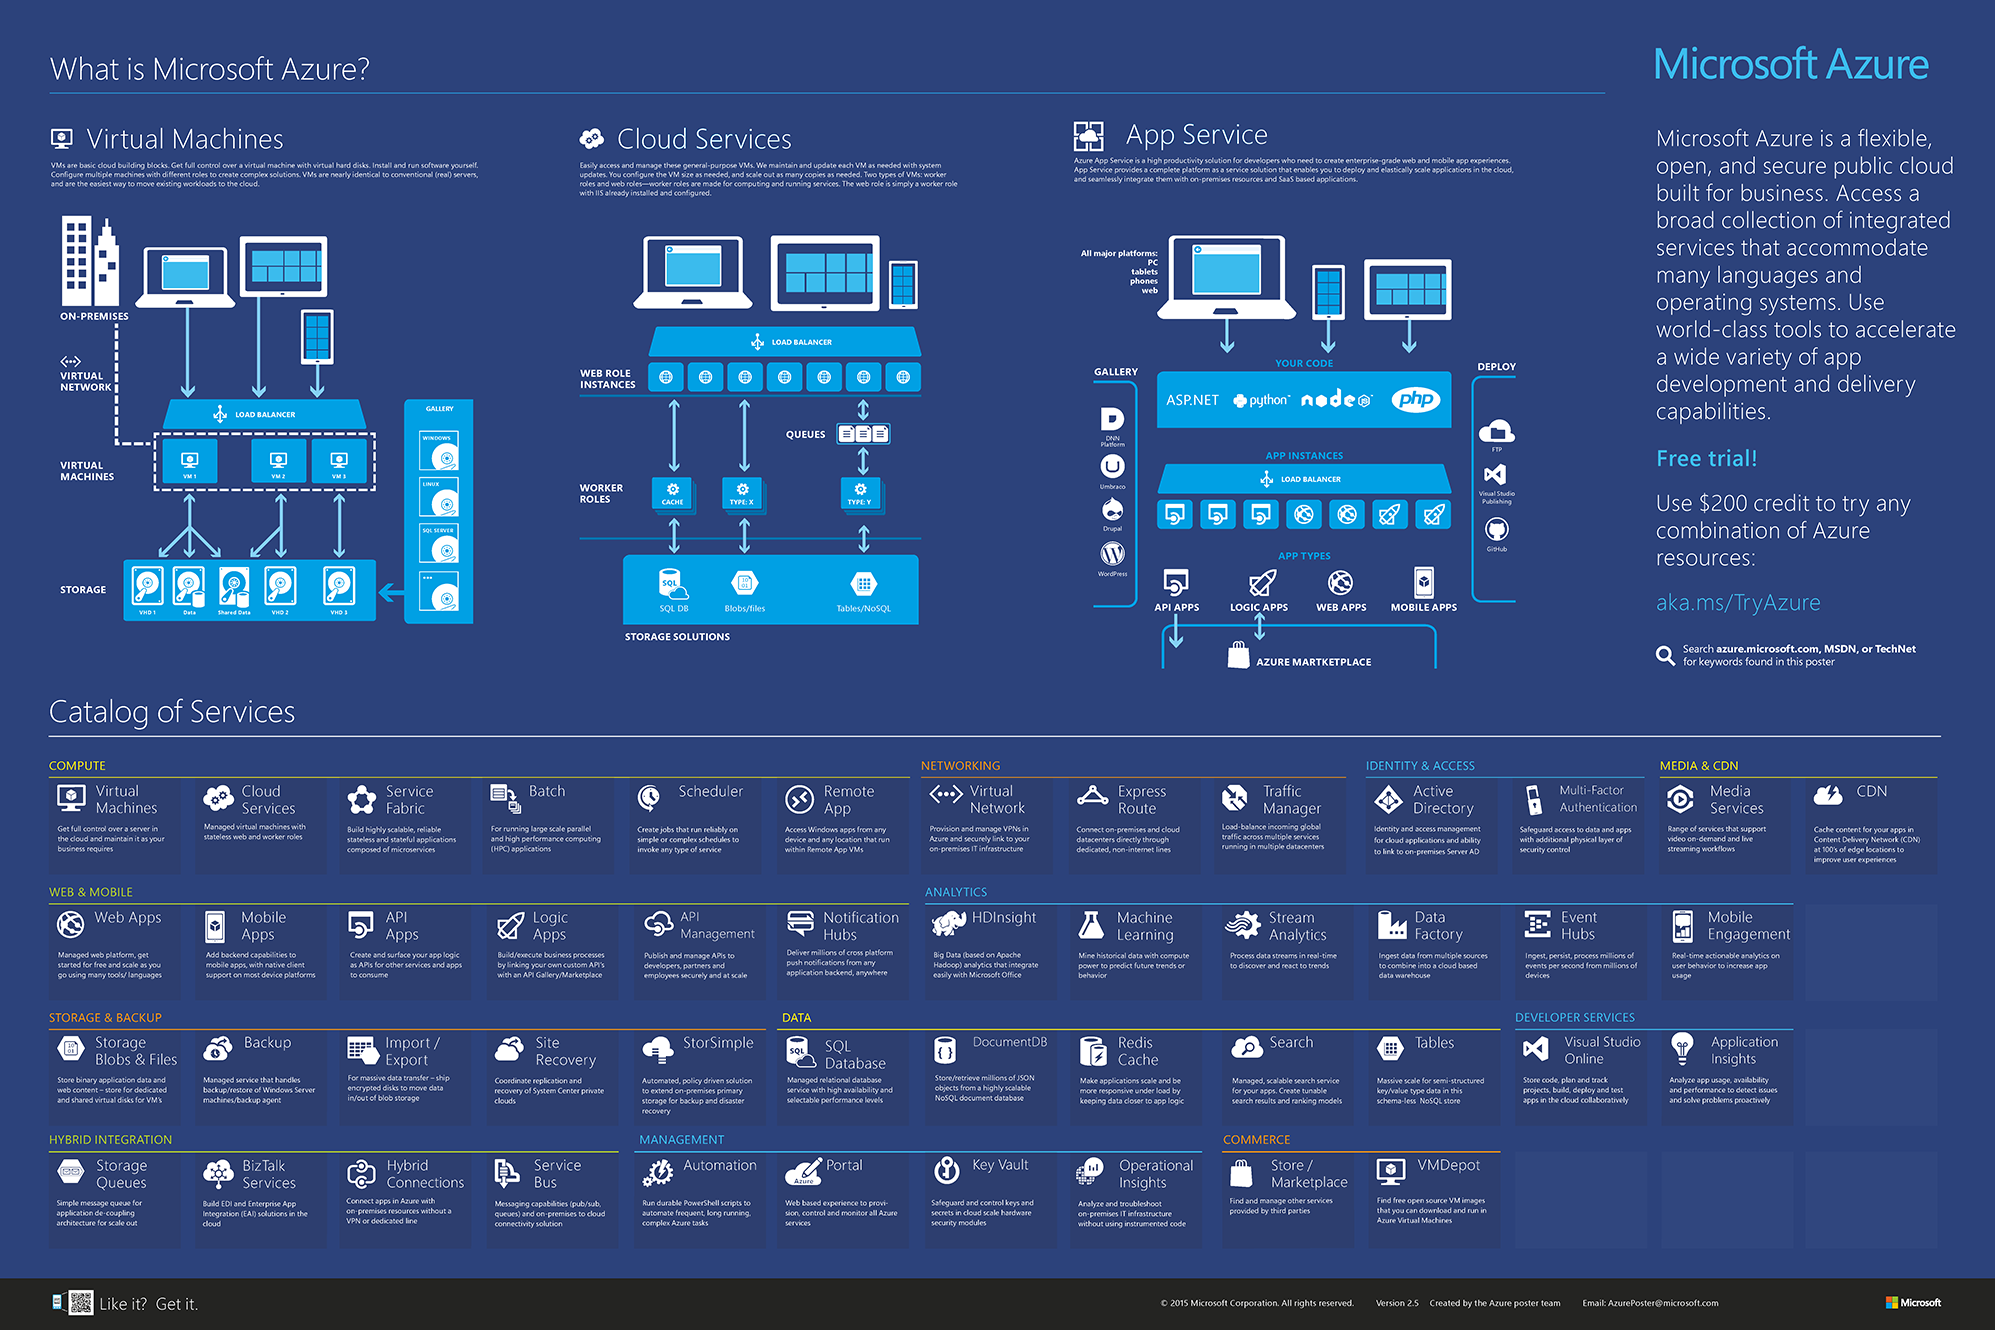 Microsoft Azure Infographic 2015 2.5.png